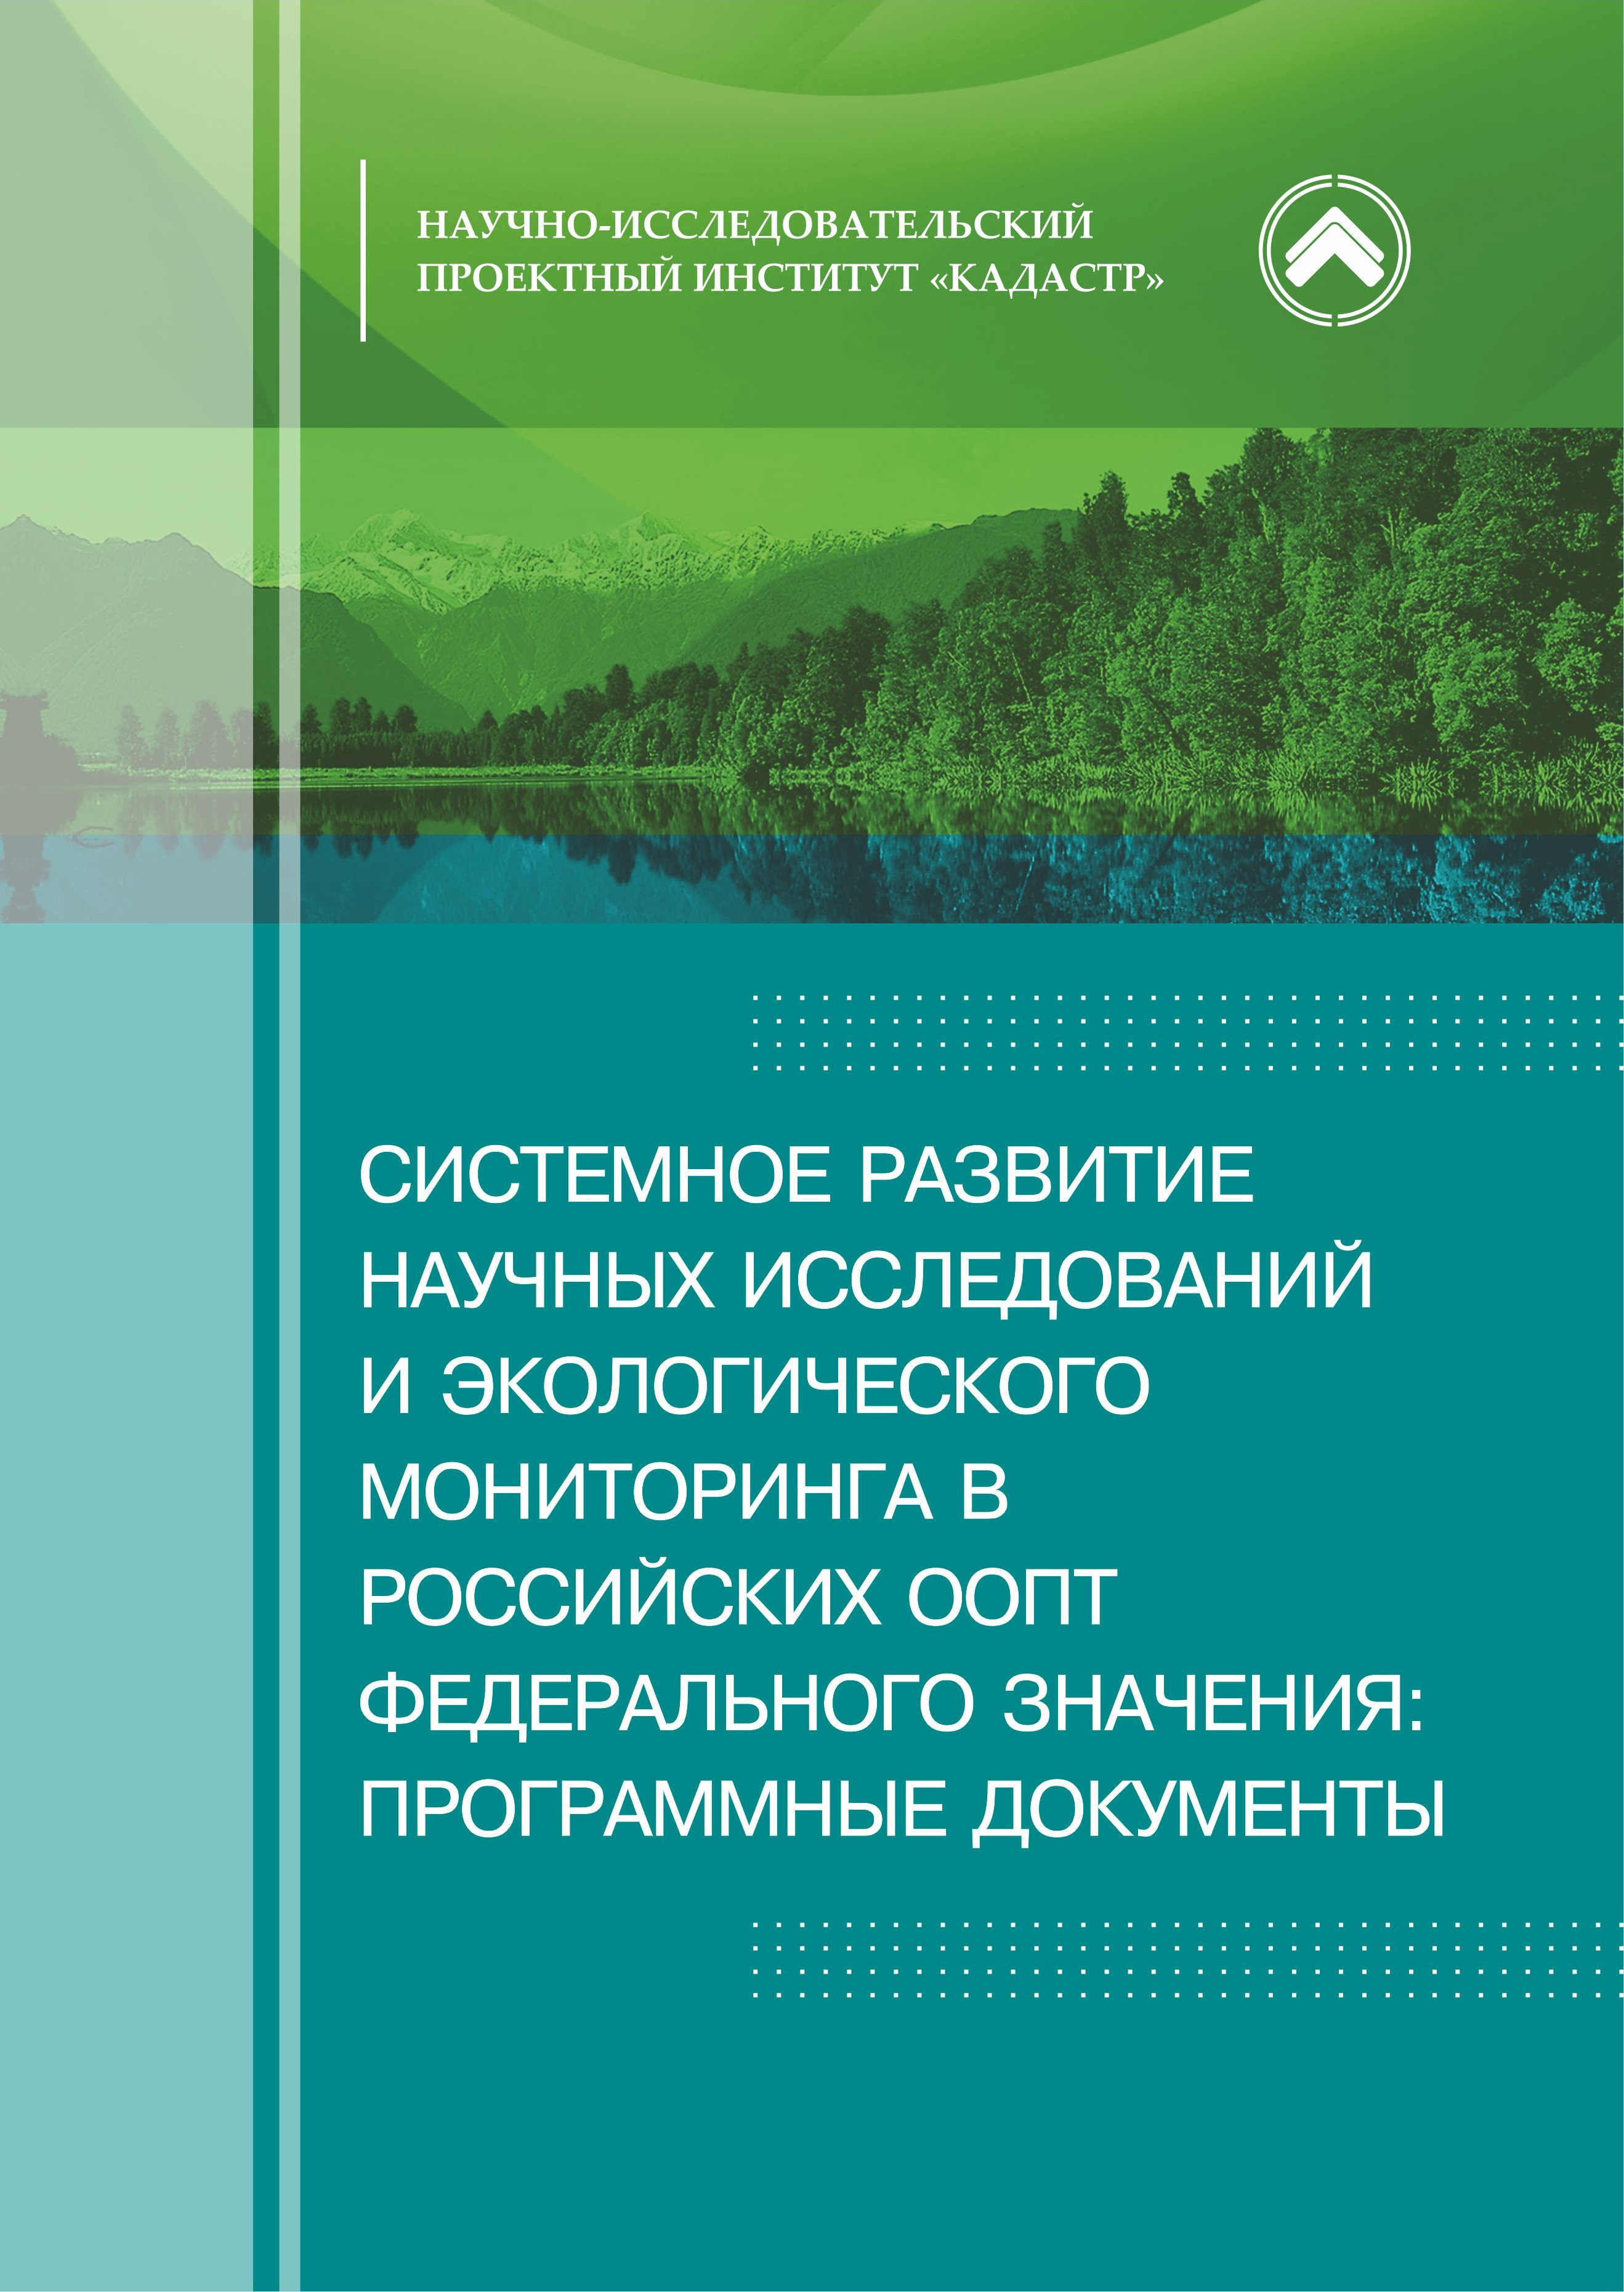 Georgy Fomenko, Marina Fomenko, Natalia Troitskaya, Mikhail Stishov, Anastasia Mikhailovа. System Development of Research and Environmental Monitoring in Russian Specially Protected Areas of Federal Significance: Policy Documents. Analytical Report